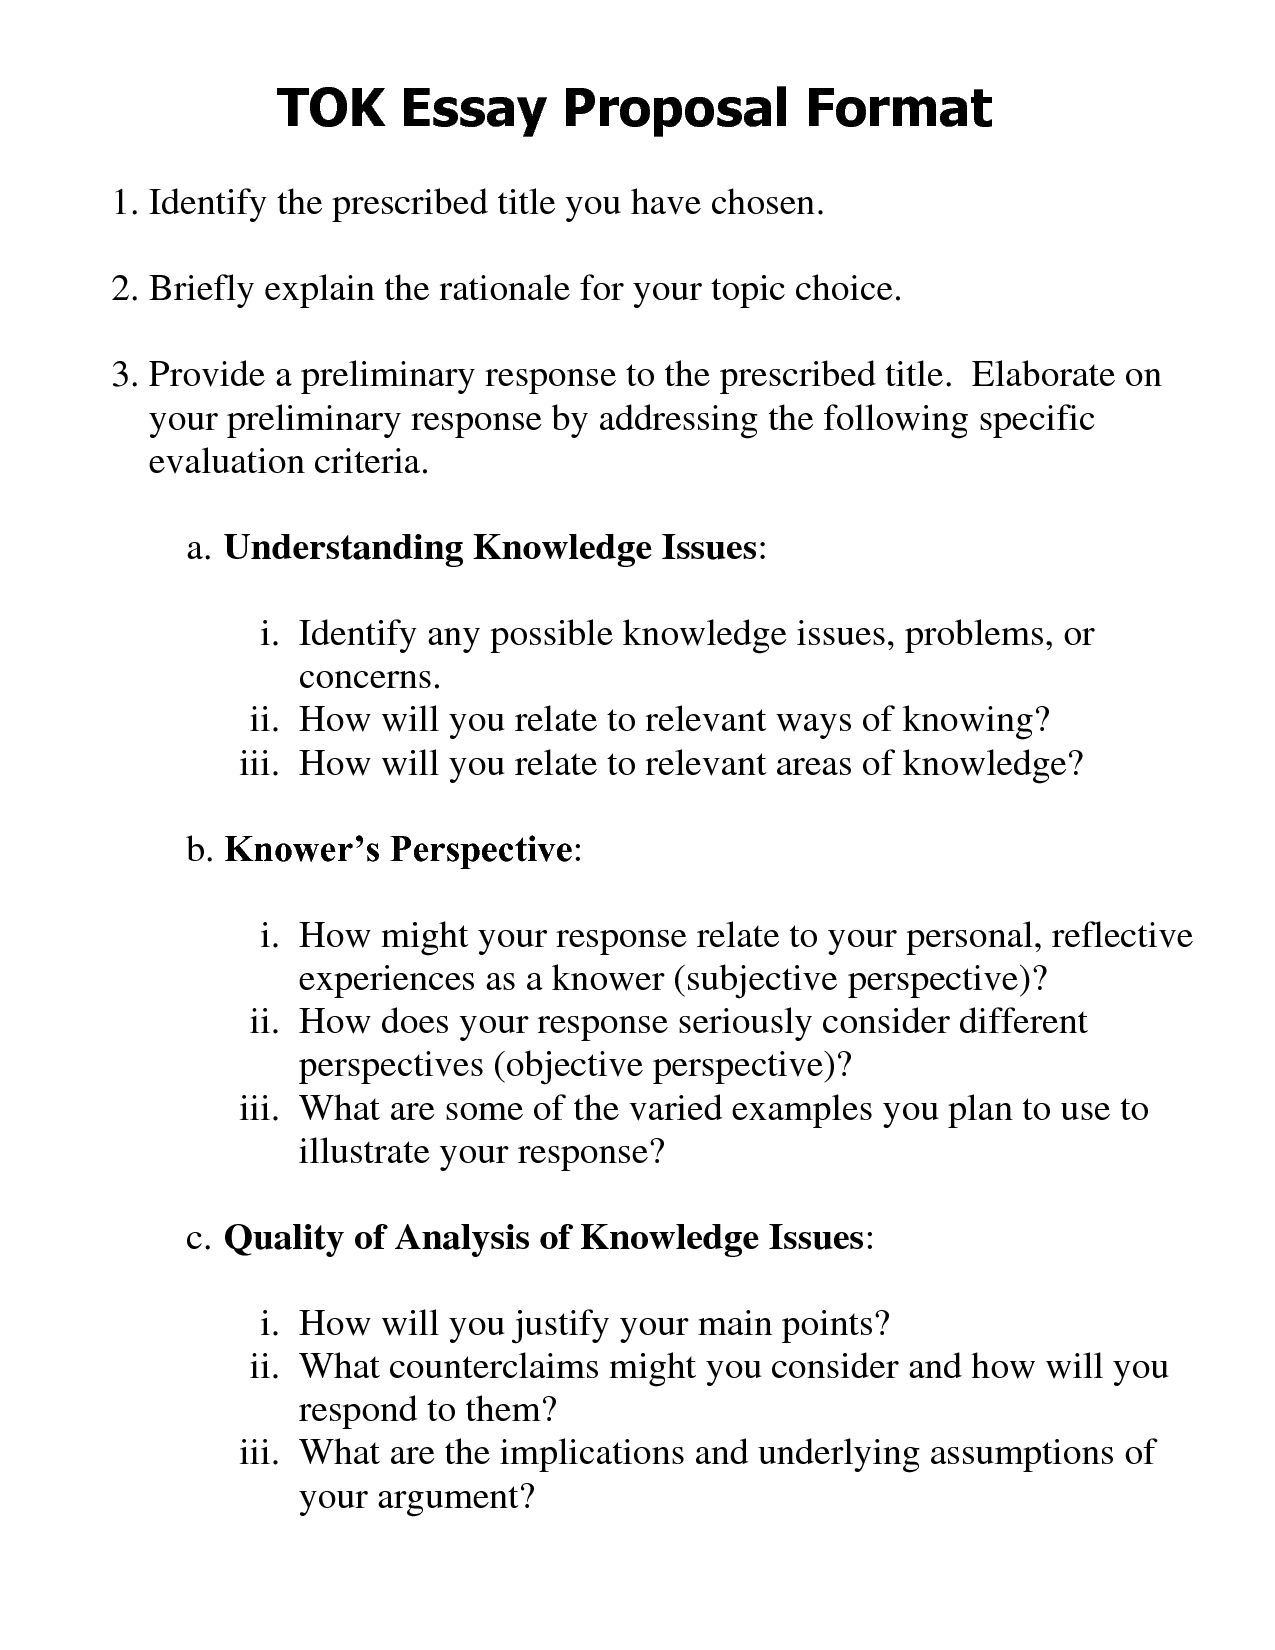 Should The Government Provide Health Care Essay How To Write A Proposal Essay Outline Example Essay Proposal Paper Example  Essay Proposal Paper Essaywrite Healthy Food Essay also Compare And Contrast Essay Topics For High School  Page Essay Outline How To Write A Proposal Essay Outline Example  Essay About Good Health